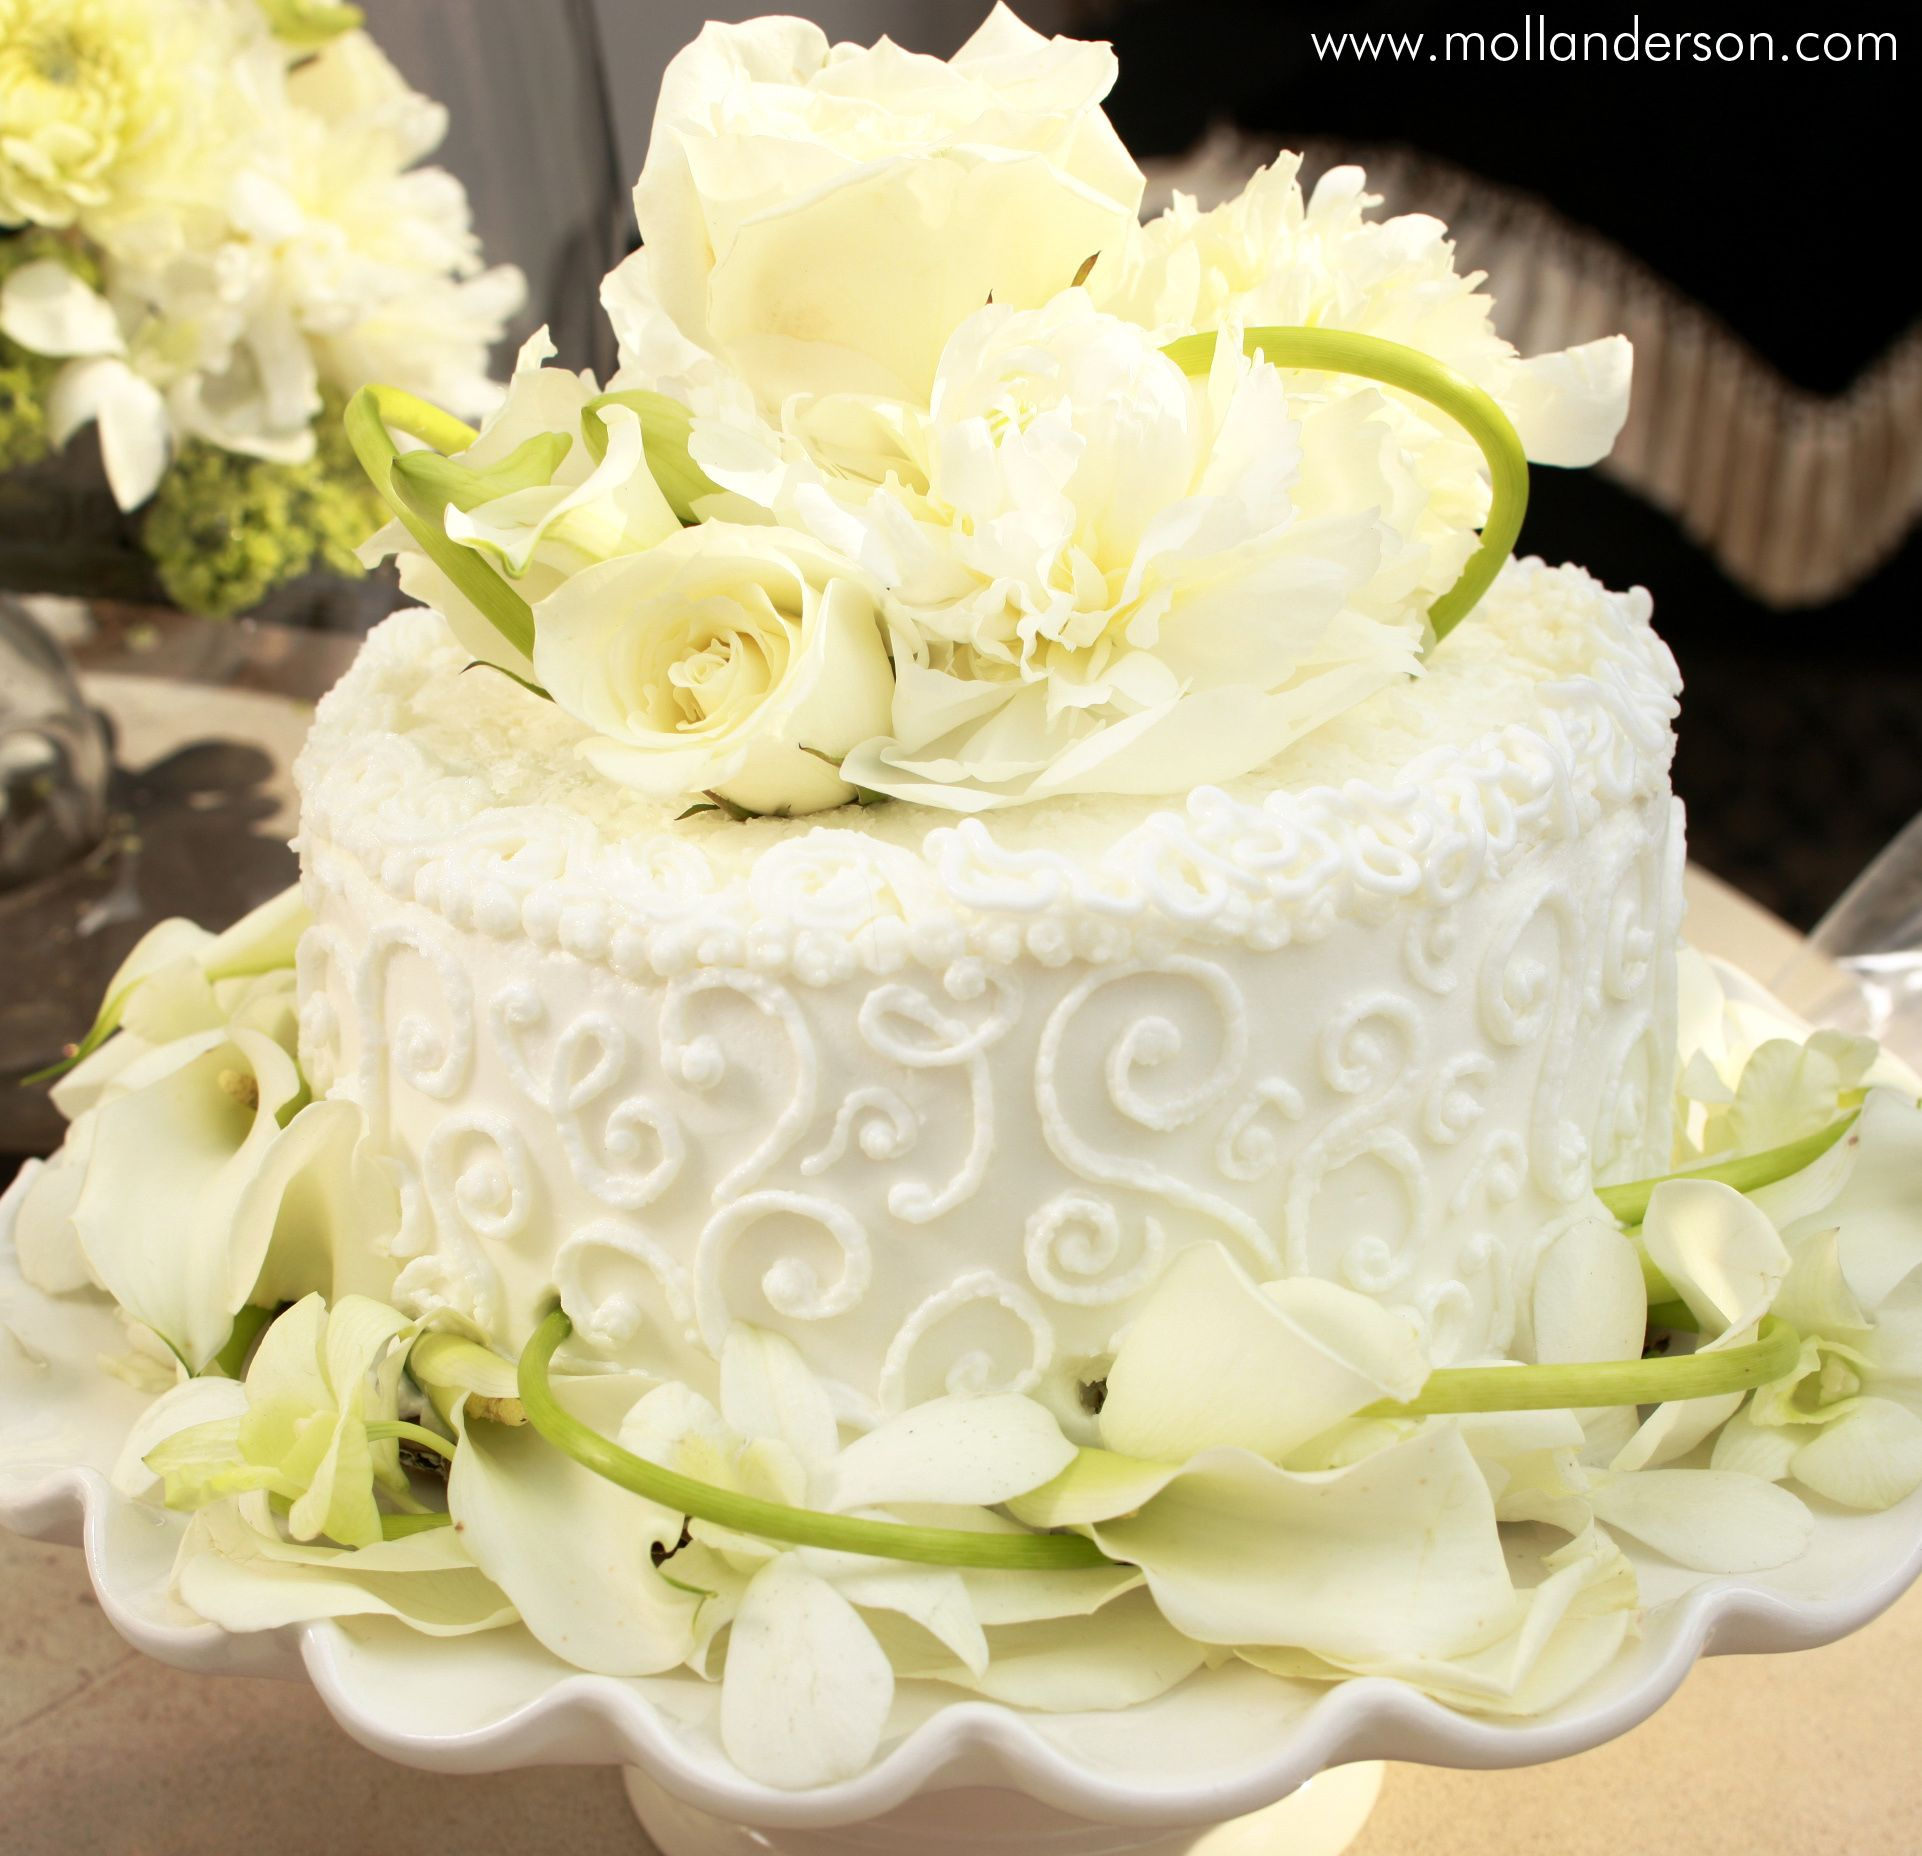 By sticking fresh white flowers (calla lilies, peonies, roses ...